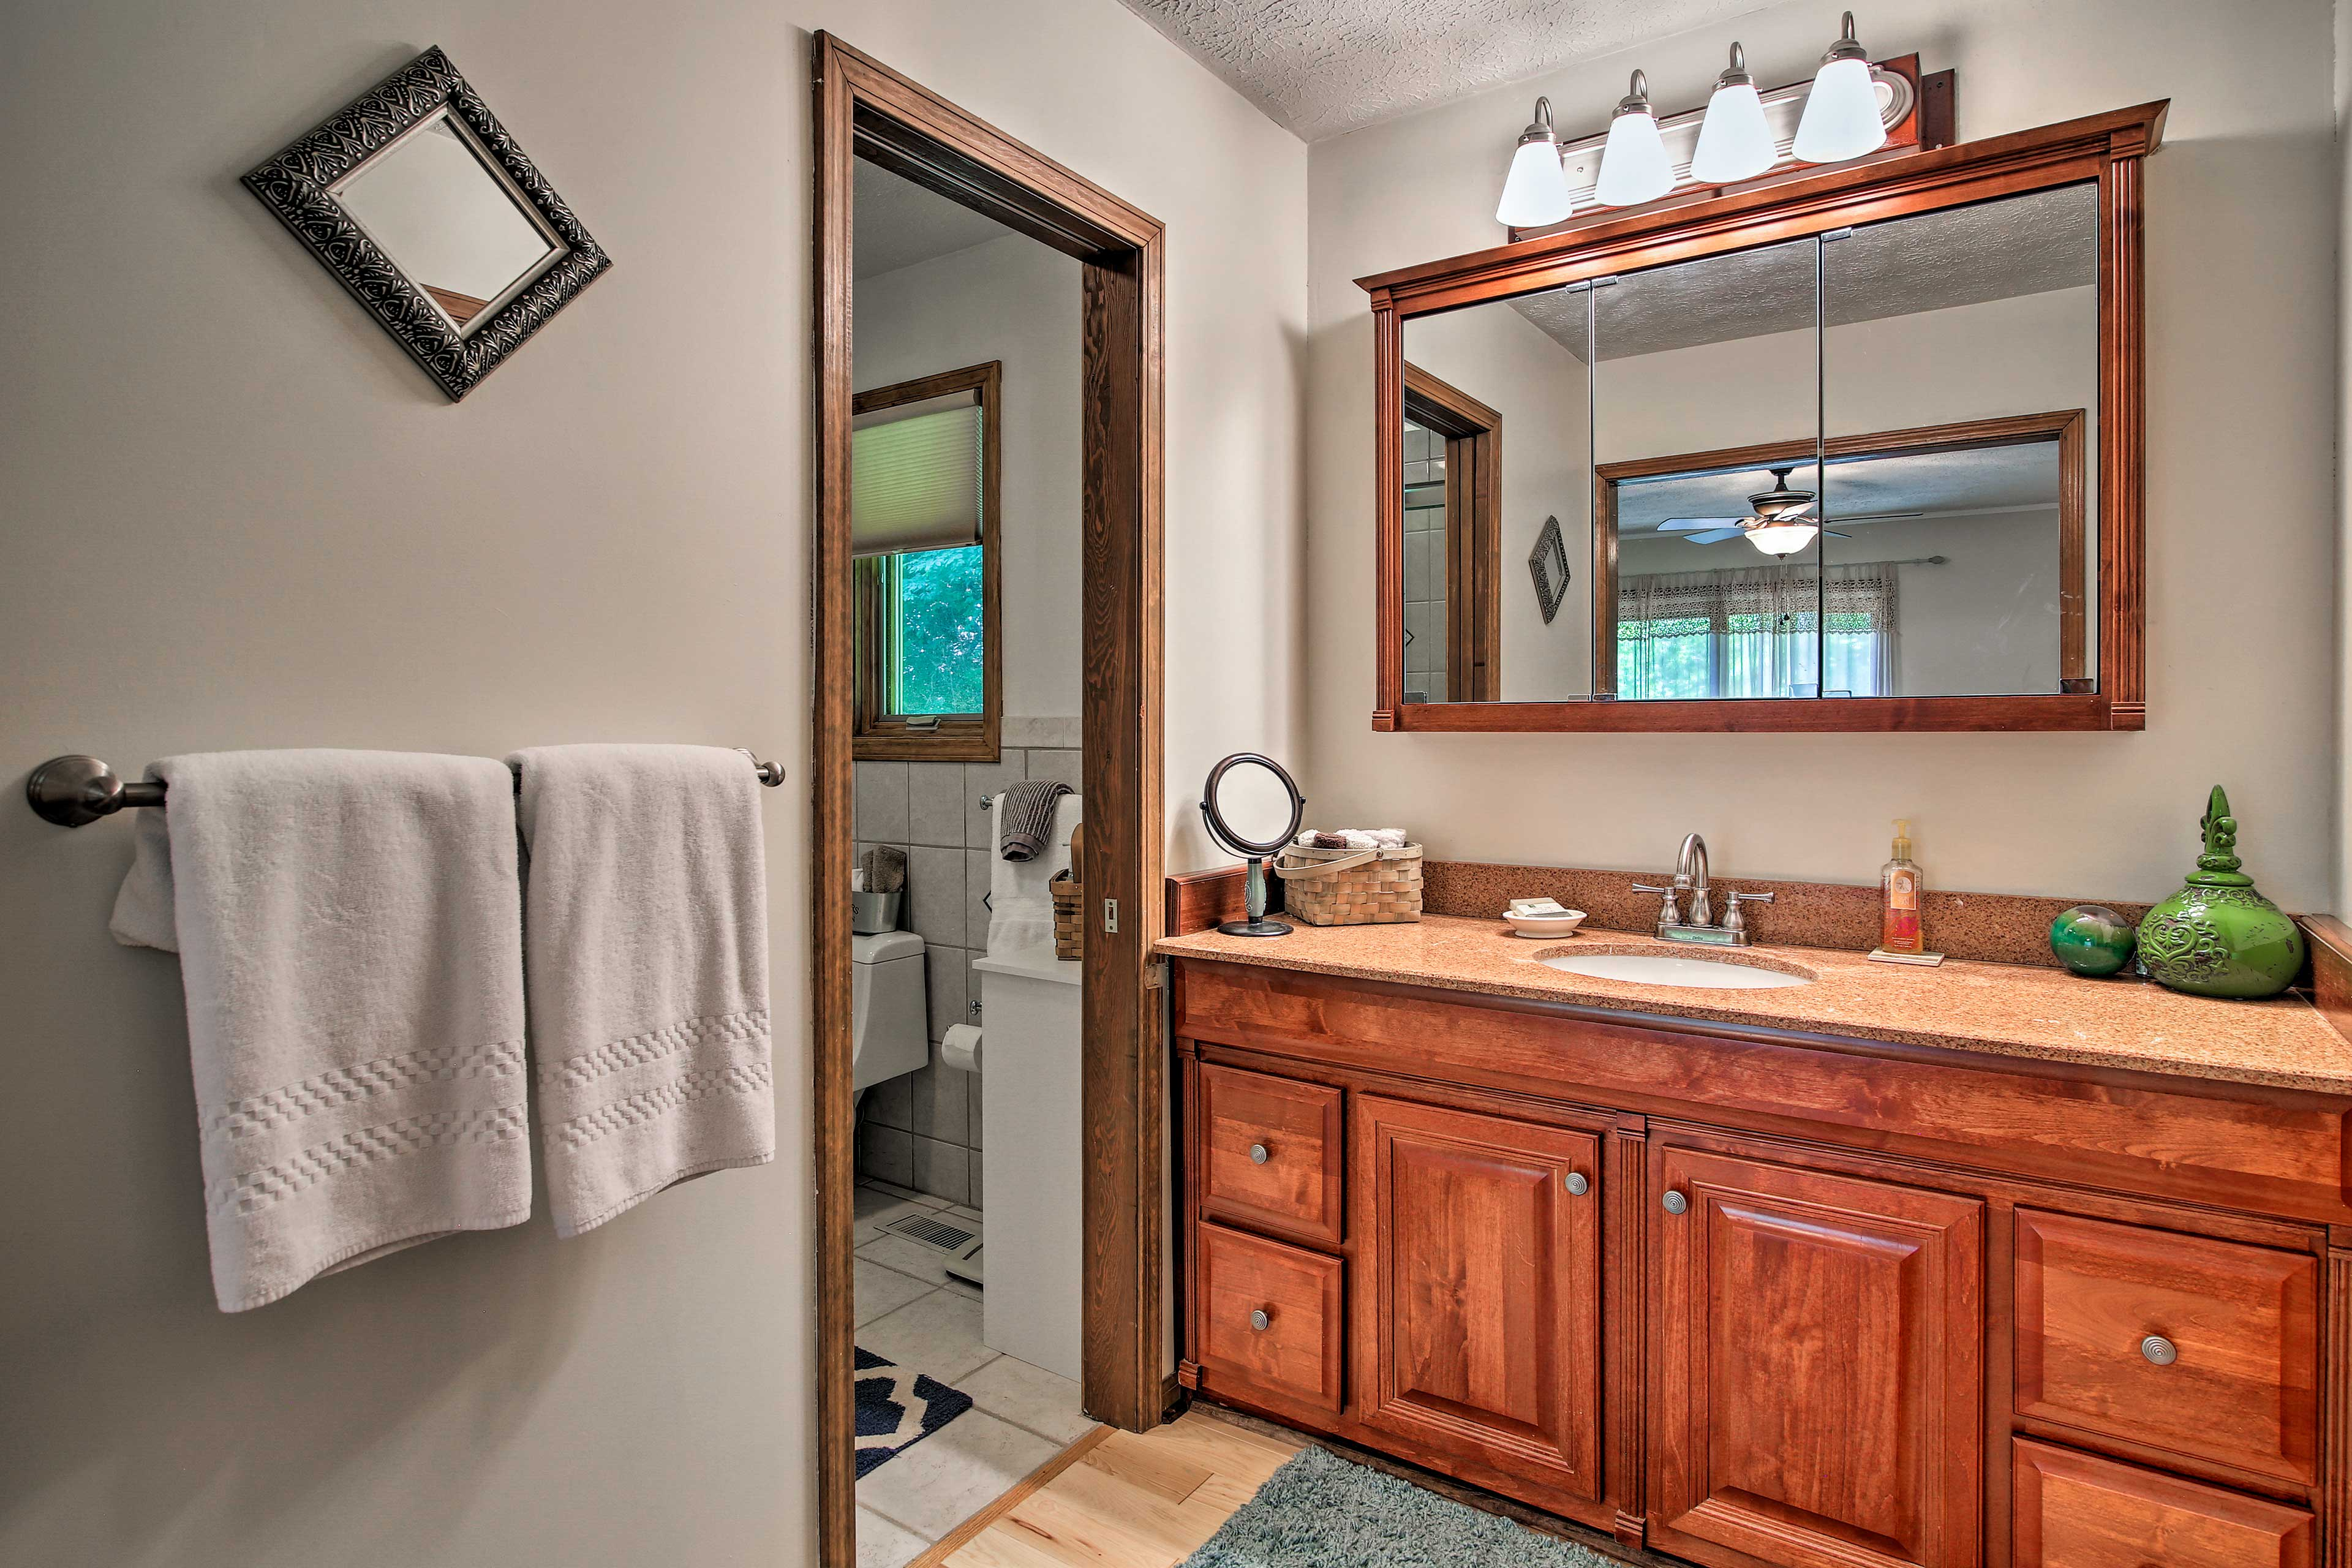 Store all your toiletries on the spacious vanity.